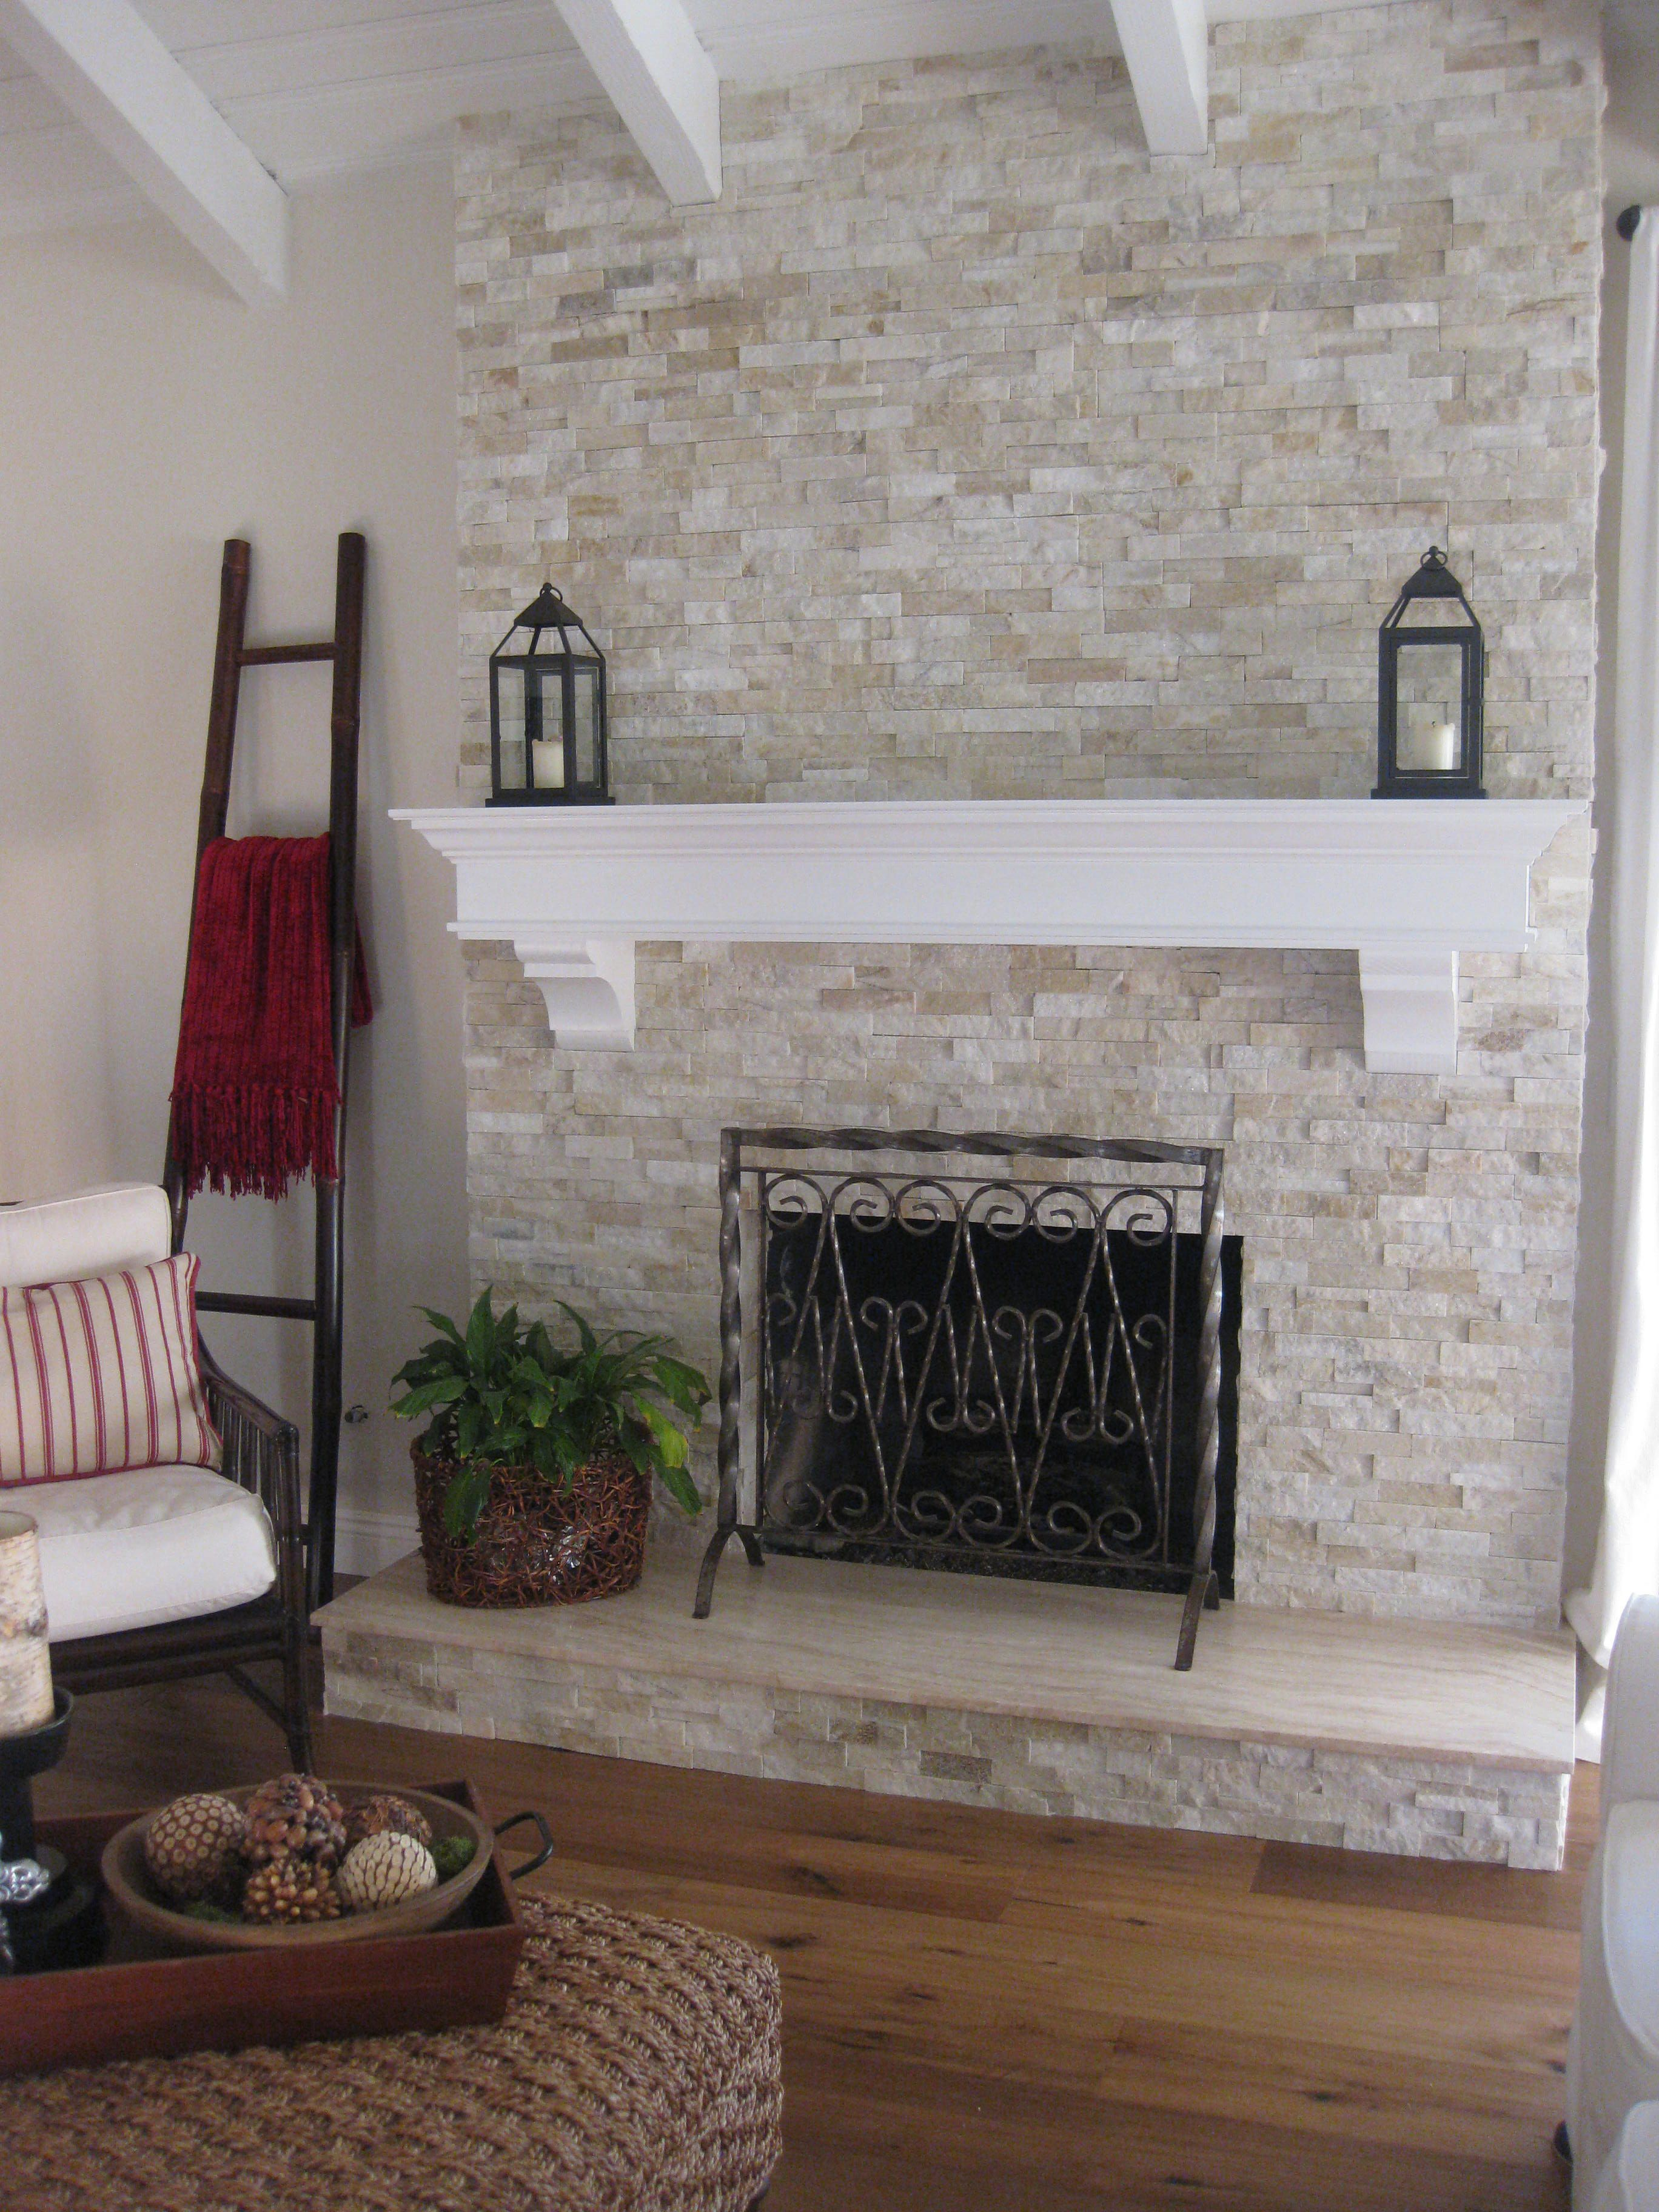 Reface An Old Brick Fireplace With East West Classic Ledge Stone Instant Update Decor Interi Brick Fireplace Makeover Reface Brick Fireplace Home Fireplace